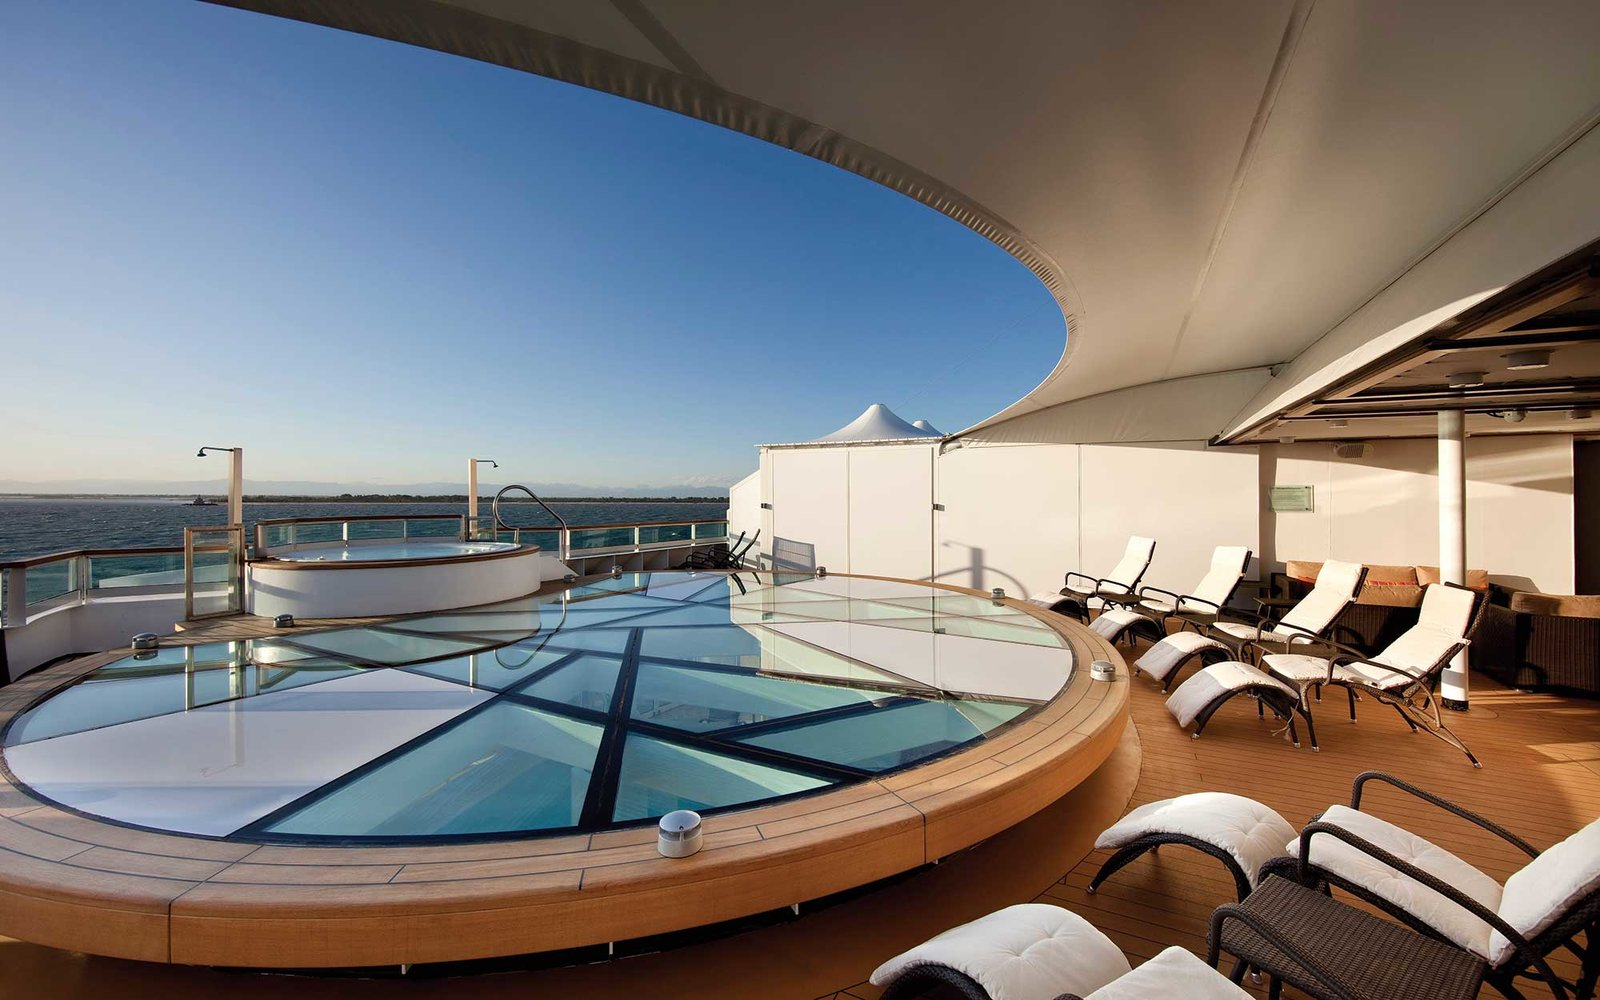 Spa Terrace - Deck 10 AftSeabourn Odyssey - Seabourn Cruise Line